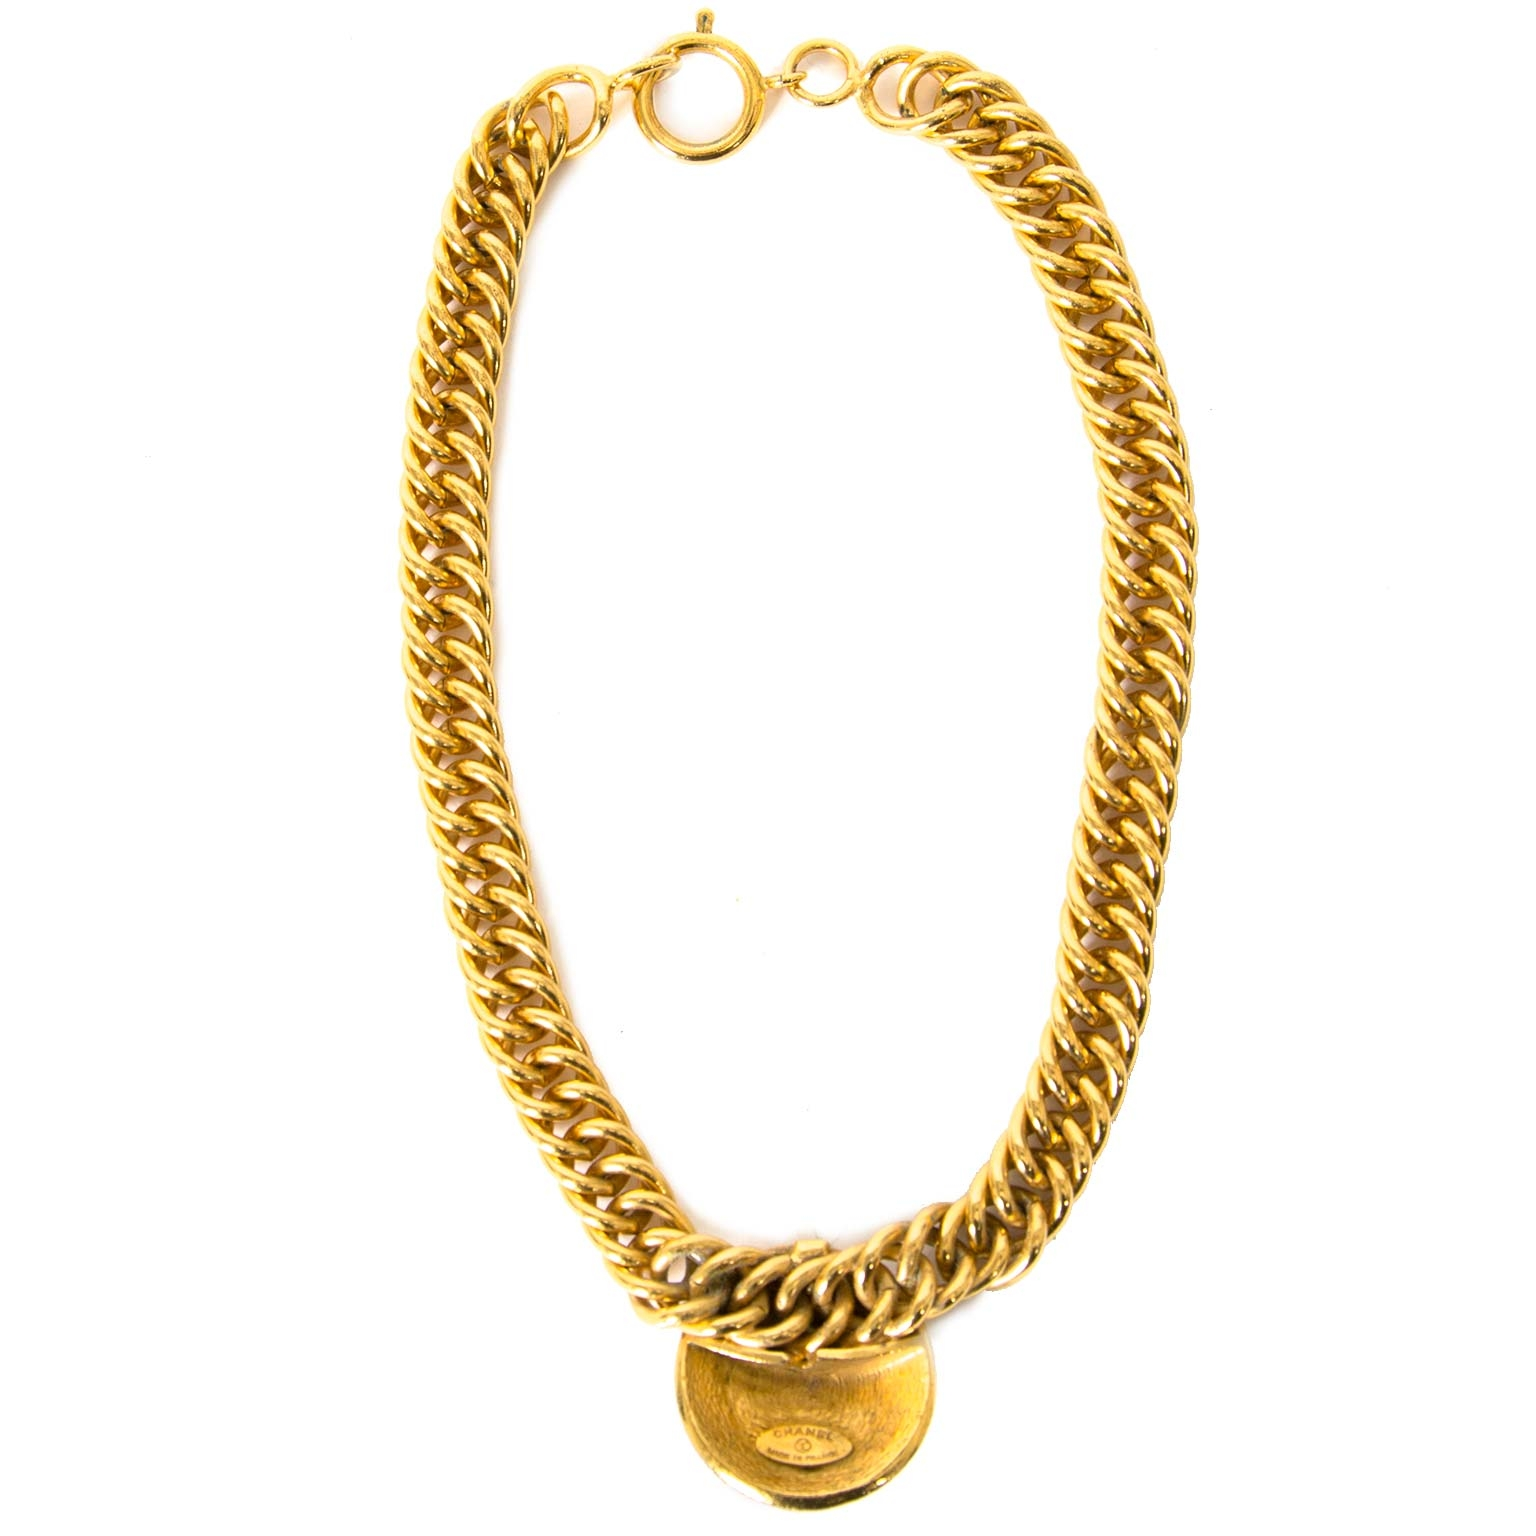 Chanel Gold-Toned Chain Necklace now for sale at labellov vintage fashion webshop belgium